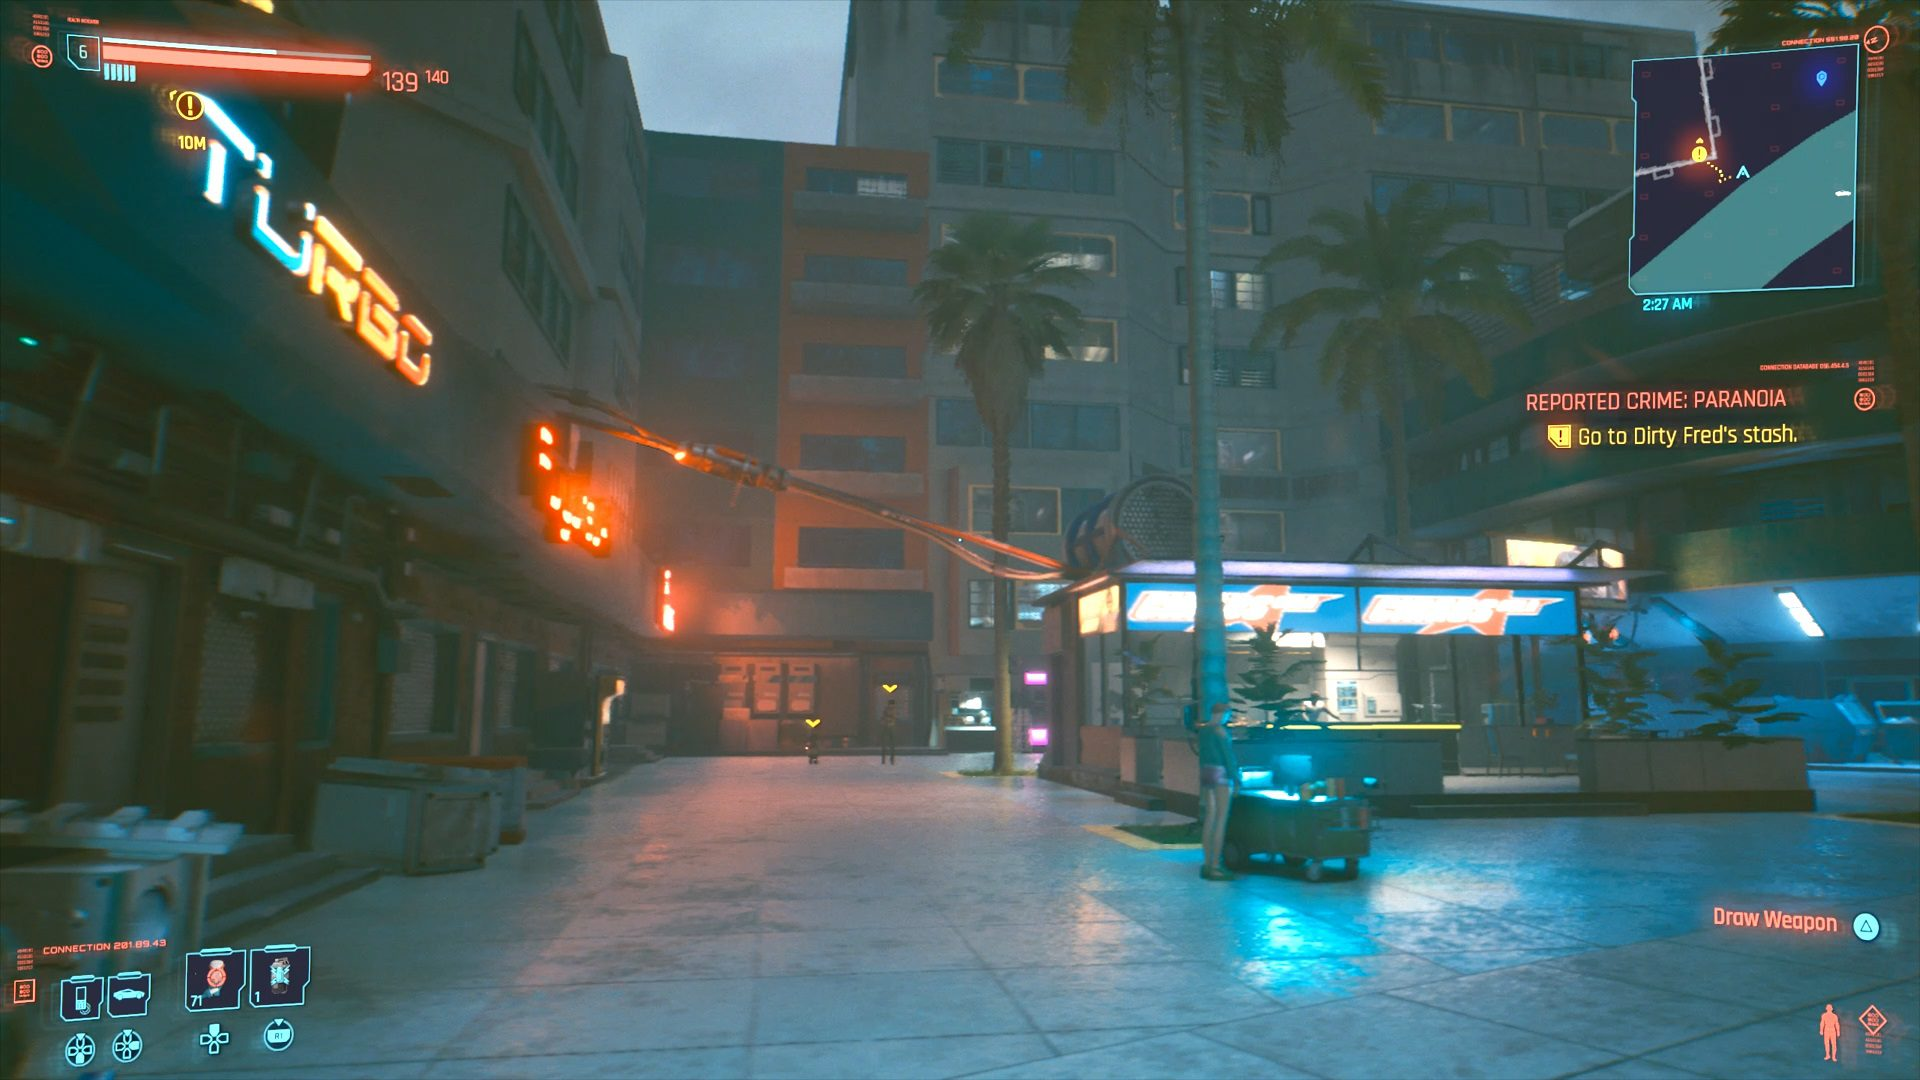 Cyberpunk 2077 Dirty Fred's Stash Location Guide